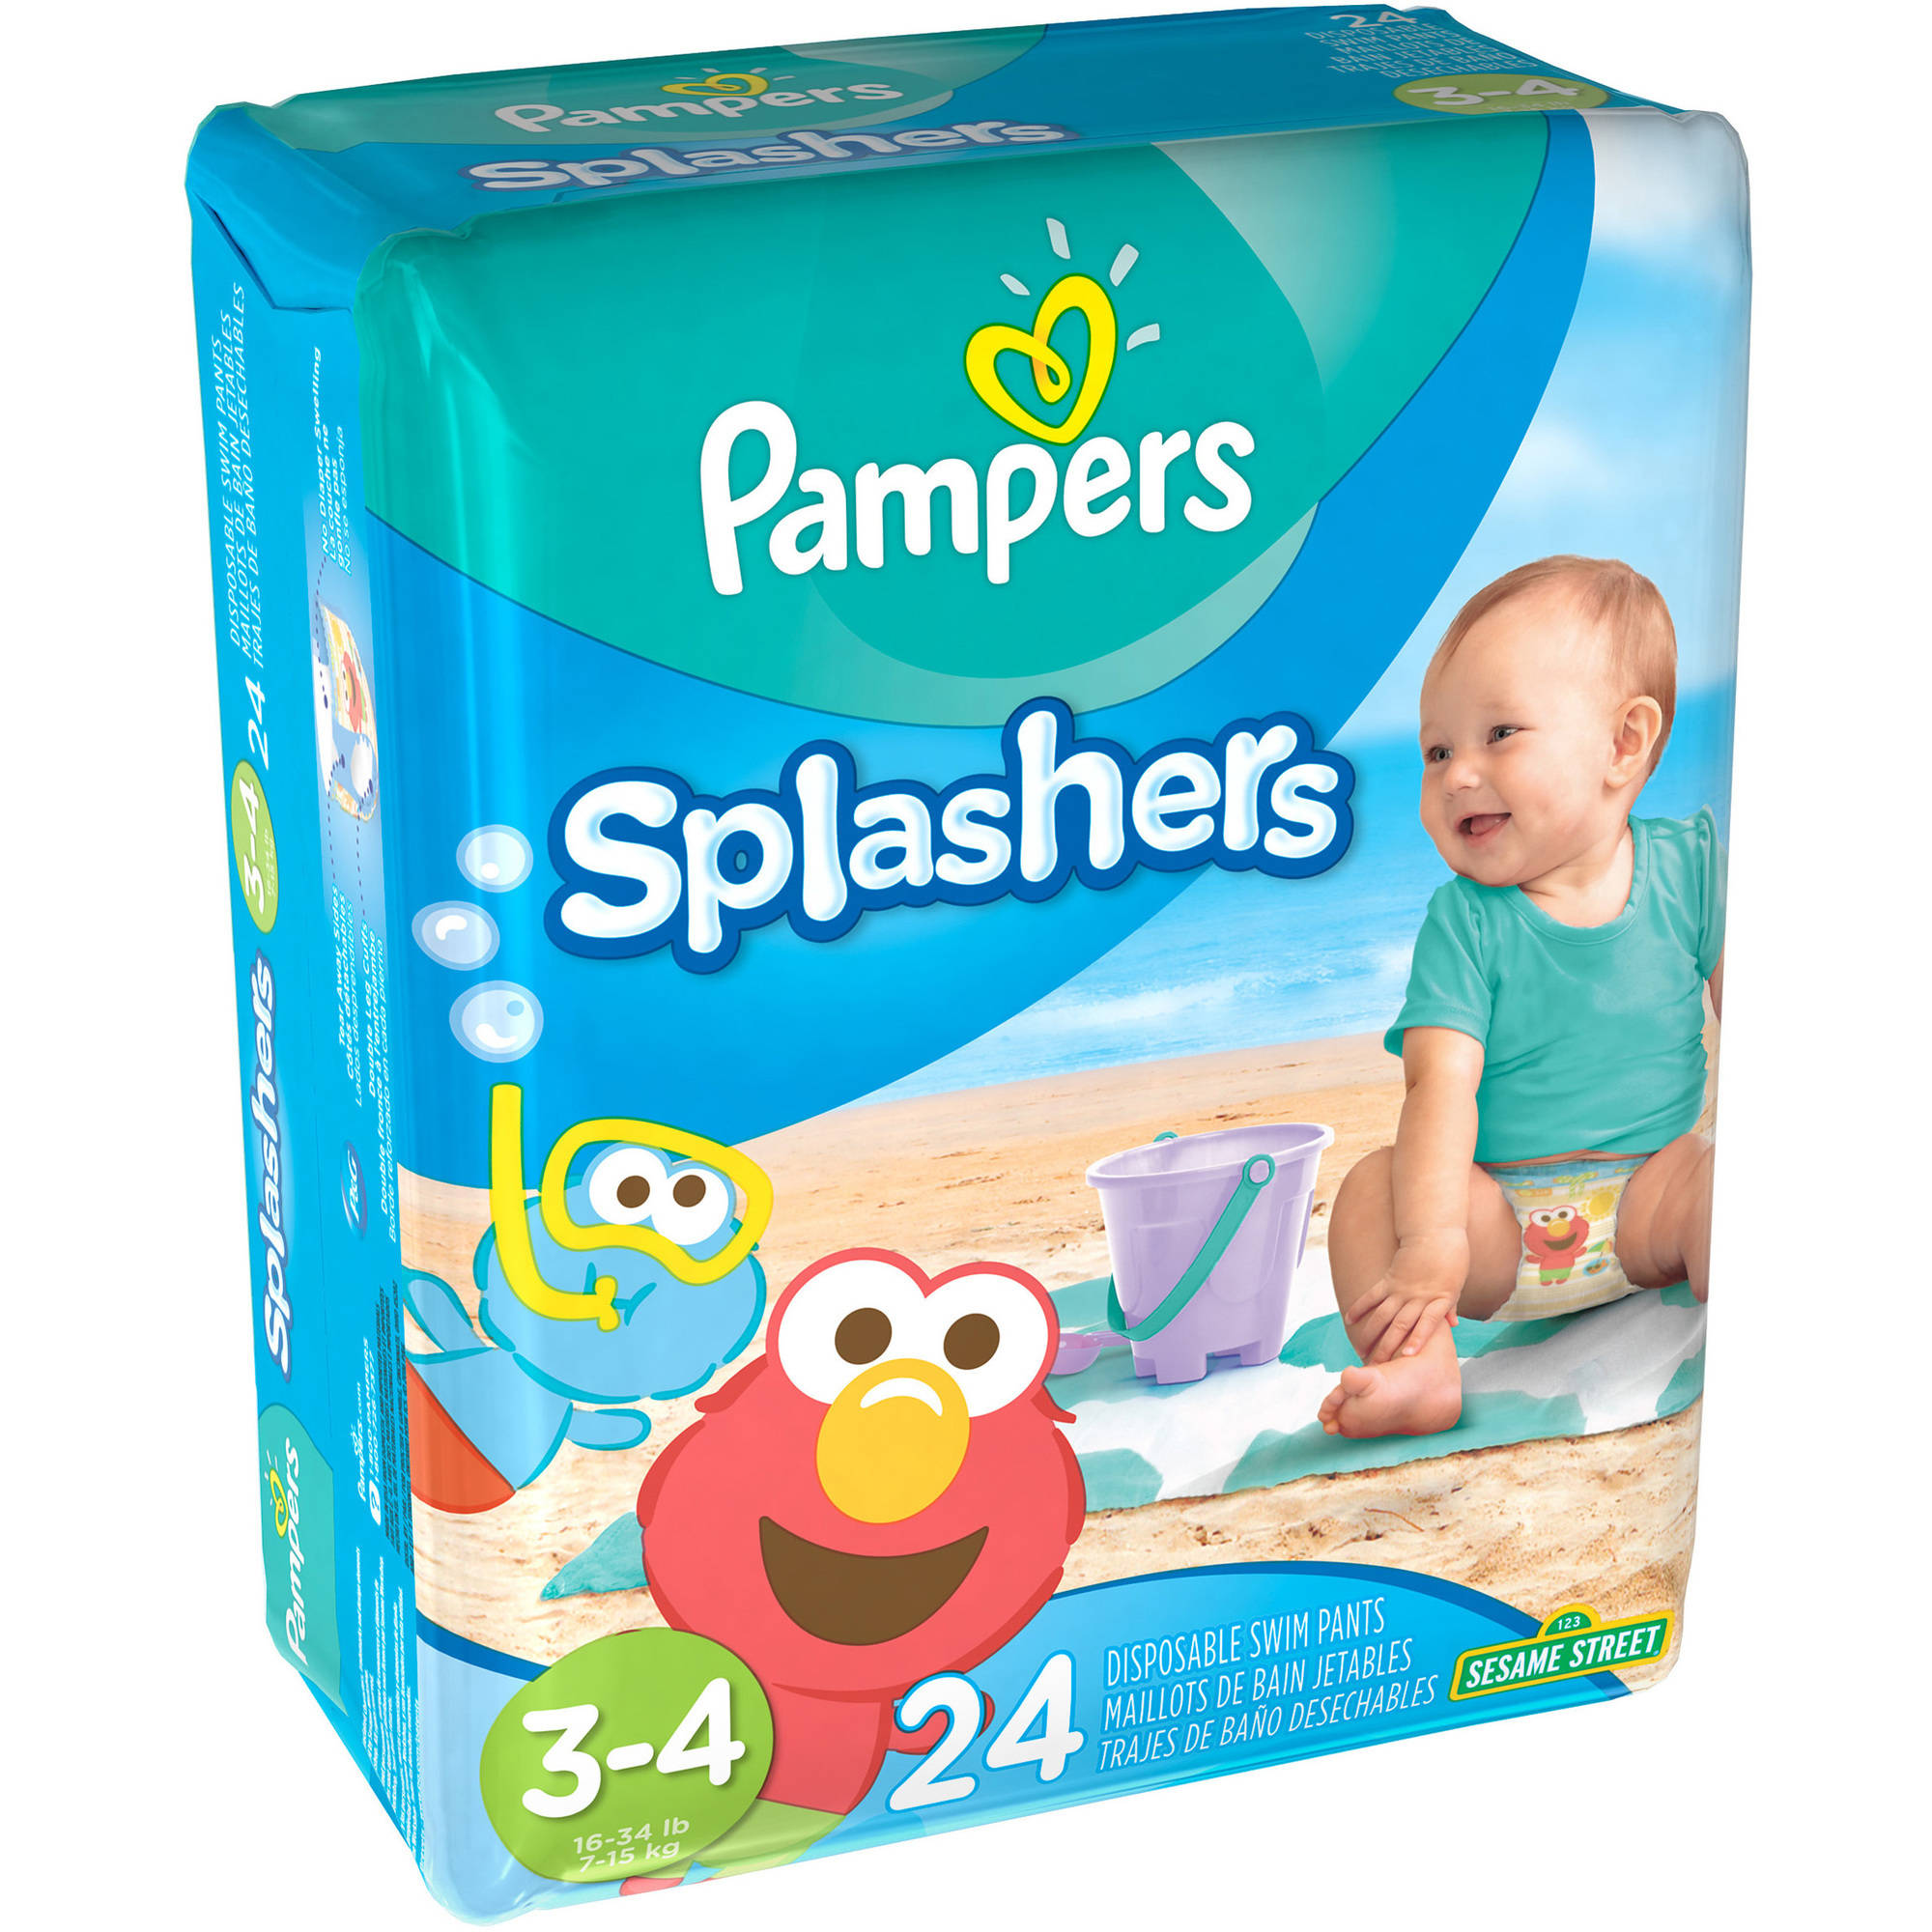 Pampers splashers disposable swim pants choose your size pampers splashers disposable swim pants choose your size walmart nvjuhfo Image collections